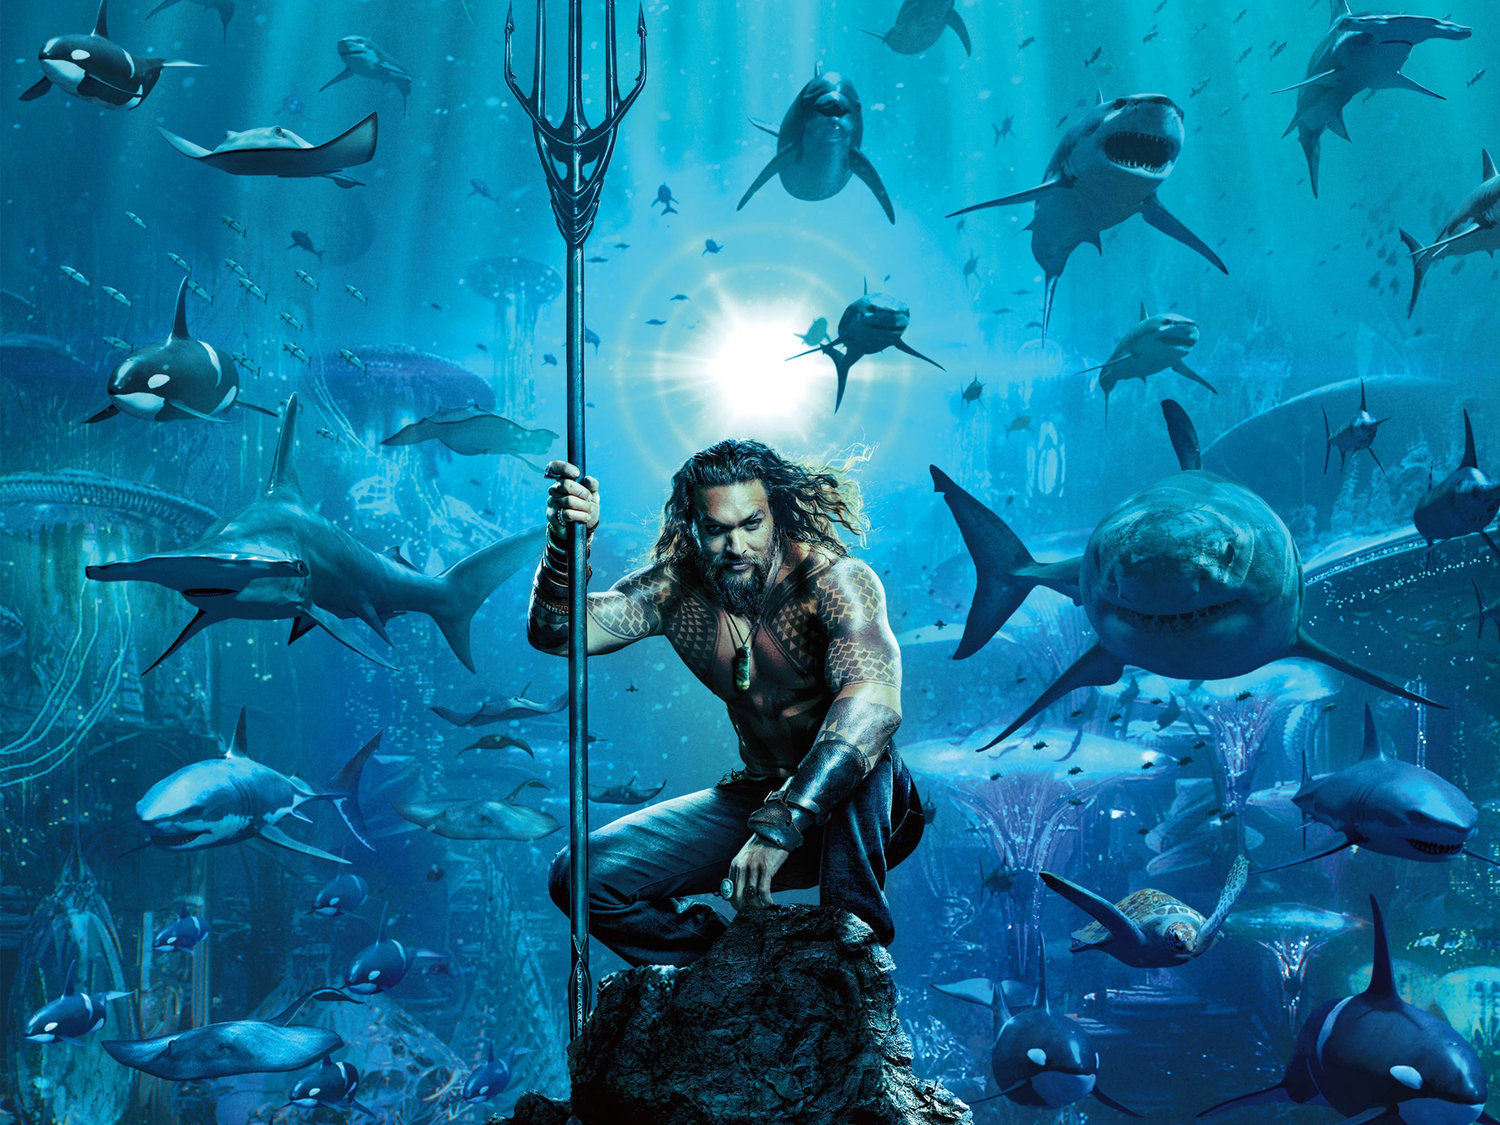 The climactic battle scene from Aquaman that takes place underwater, combining sea monsters and animals.The climactic battle scene from Aquaman that takes place underwater, combining sea monsters and animals.The climactic battle scene from Aquaman that takes place underwater, combining sea monsters and animals.The climactic battle scene from Aquaman that takes place underwater, combining sea monsters and animals.The climactic battle scene from Aquaman that takes place underwater, combining sea monsters and animals.The climactic battle scene from Aquaman that takes place underwater, combining sea monsters and animals.The climactic battle scene from Aquaman that takes place underwater, combining sea monsters and animals.The climactic battle scene from Aquaman that takes place underwater, combining sea monsters and animals.The climactic battle scene from Aquaman that takes place underwater, combining sea monsters and animals.